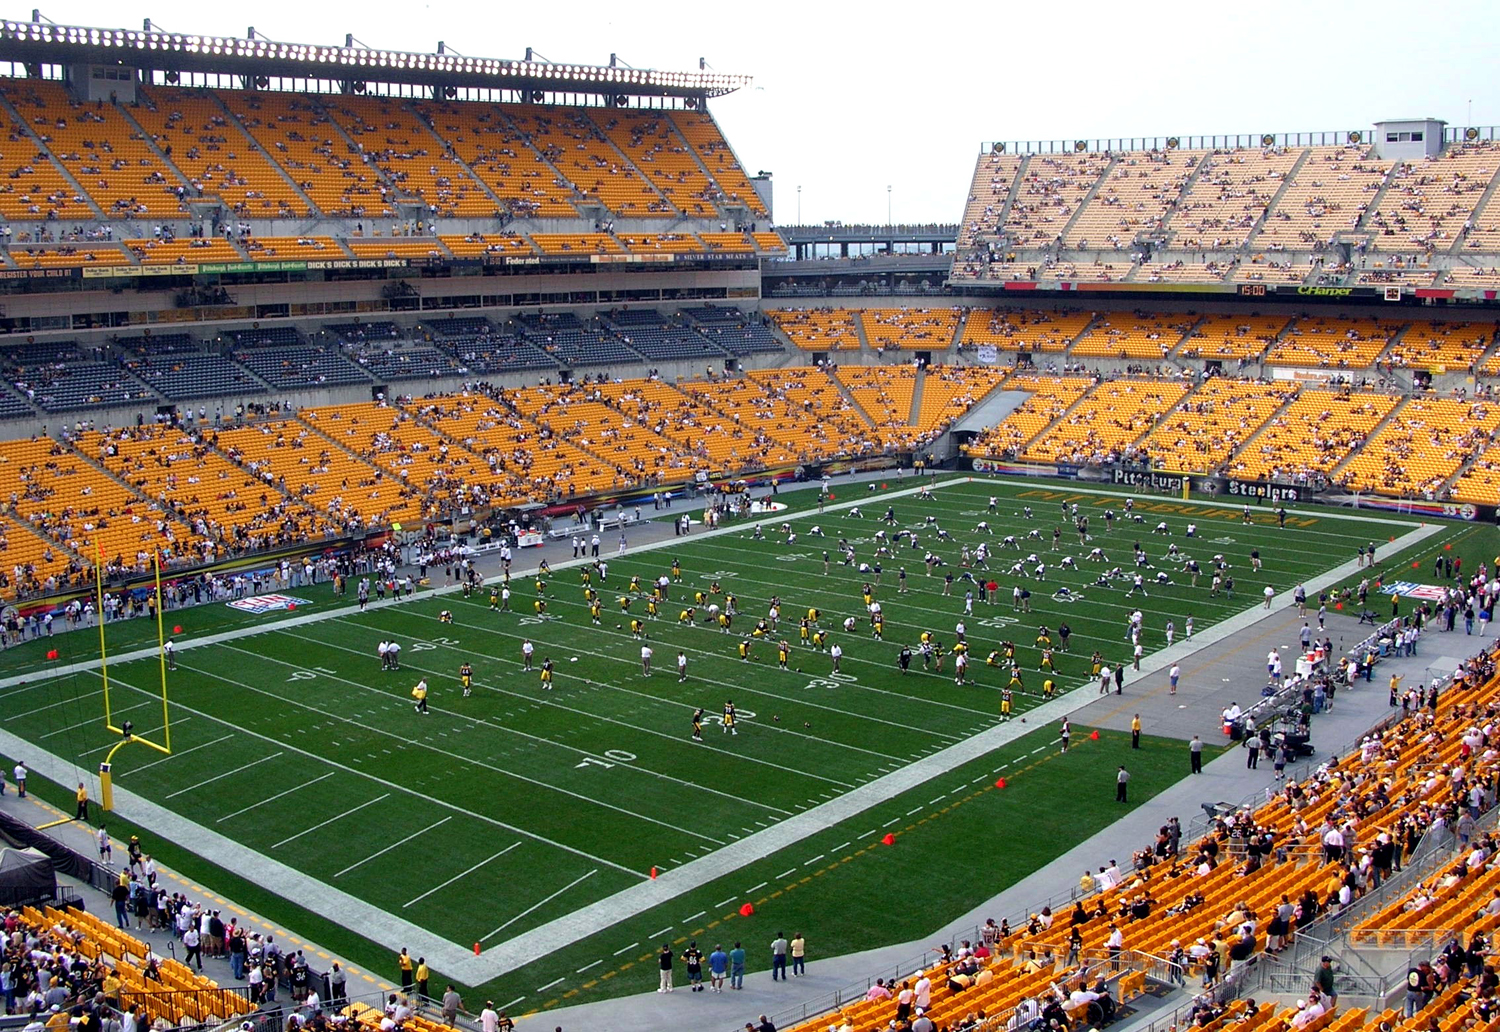 Heinz Field is the only location for Pitt's home athletic events that sells alcoholic beverages.